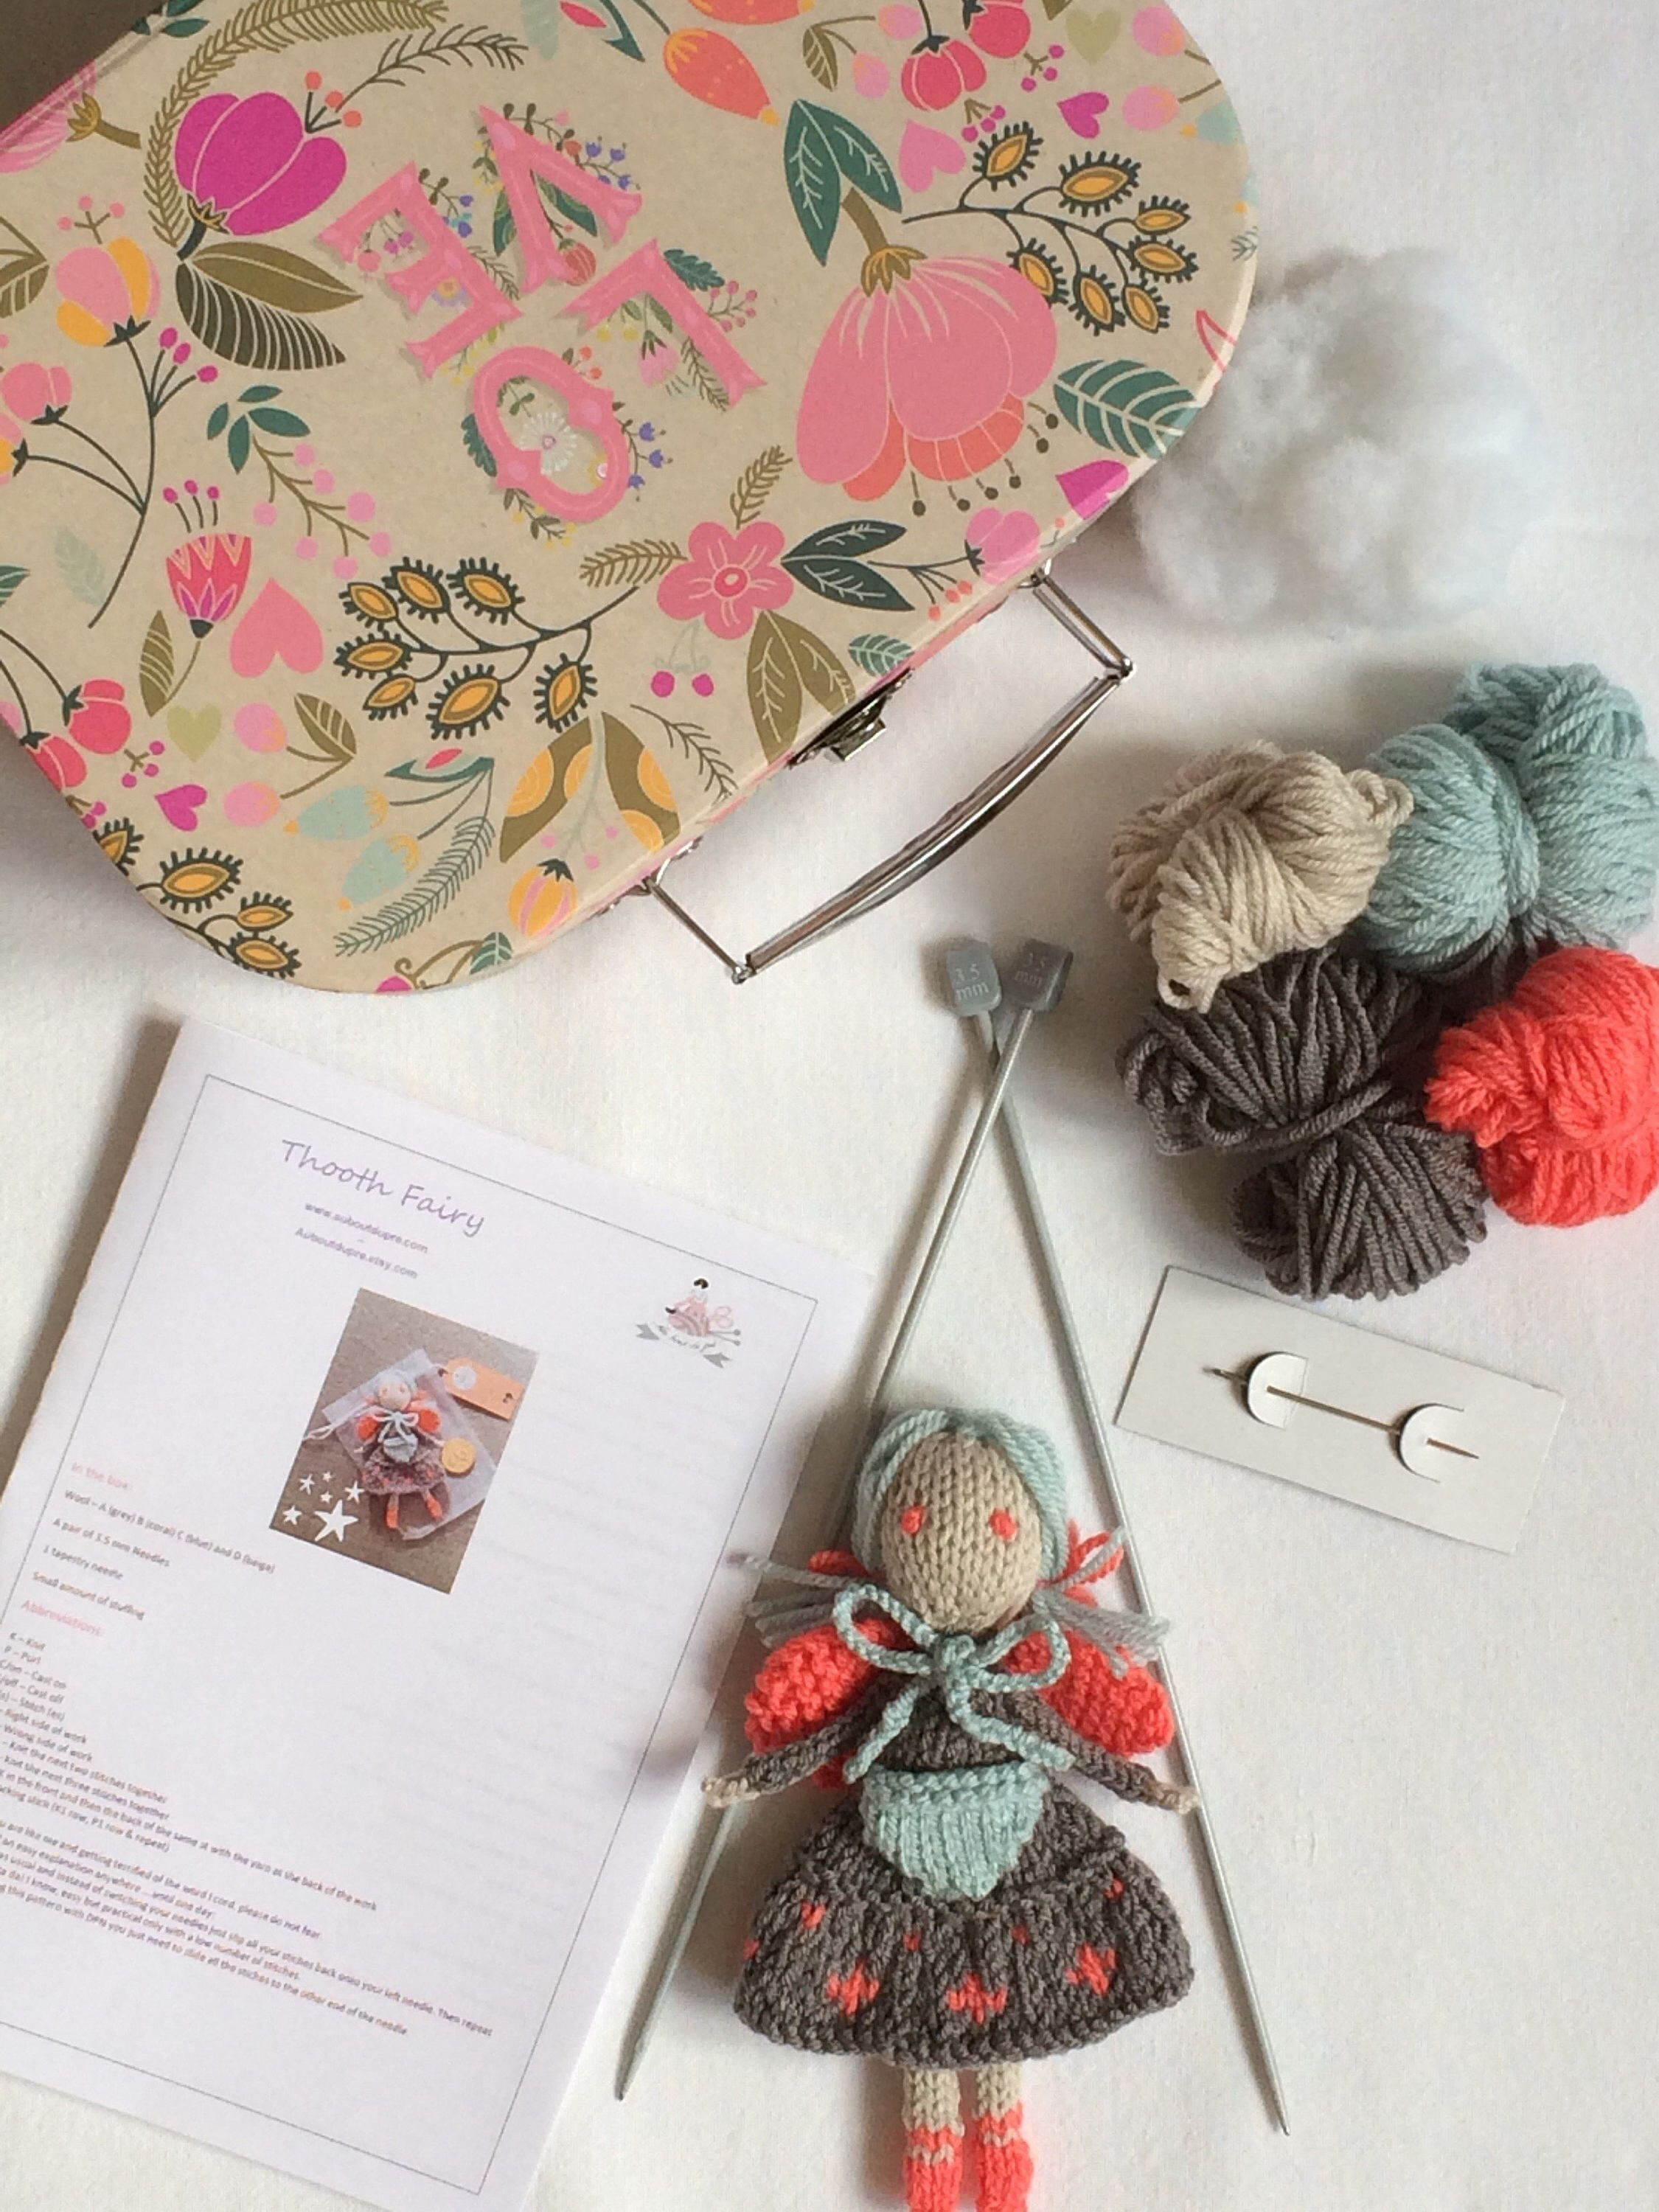 Beautiful knitting kit to make a tooth fairy httpsetsy beautiful knitting kit to make a tooth fairy httpsetsy solutioingenieria Choice Image